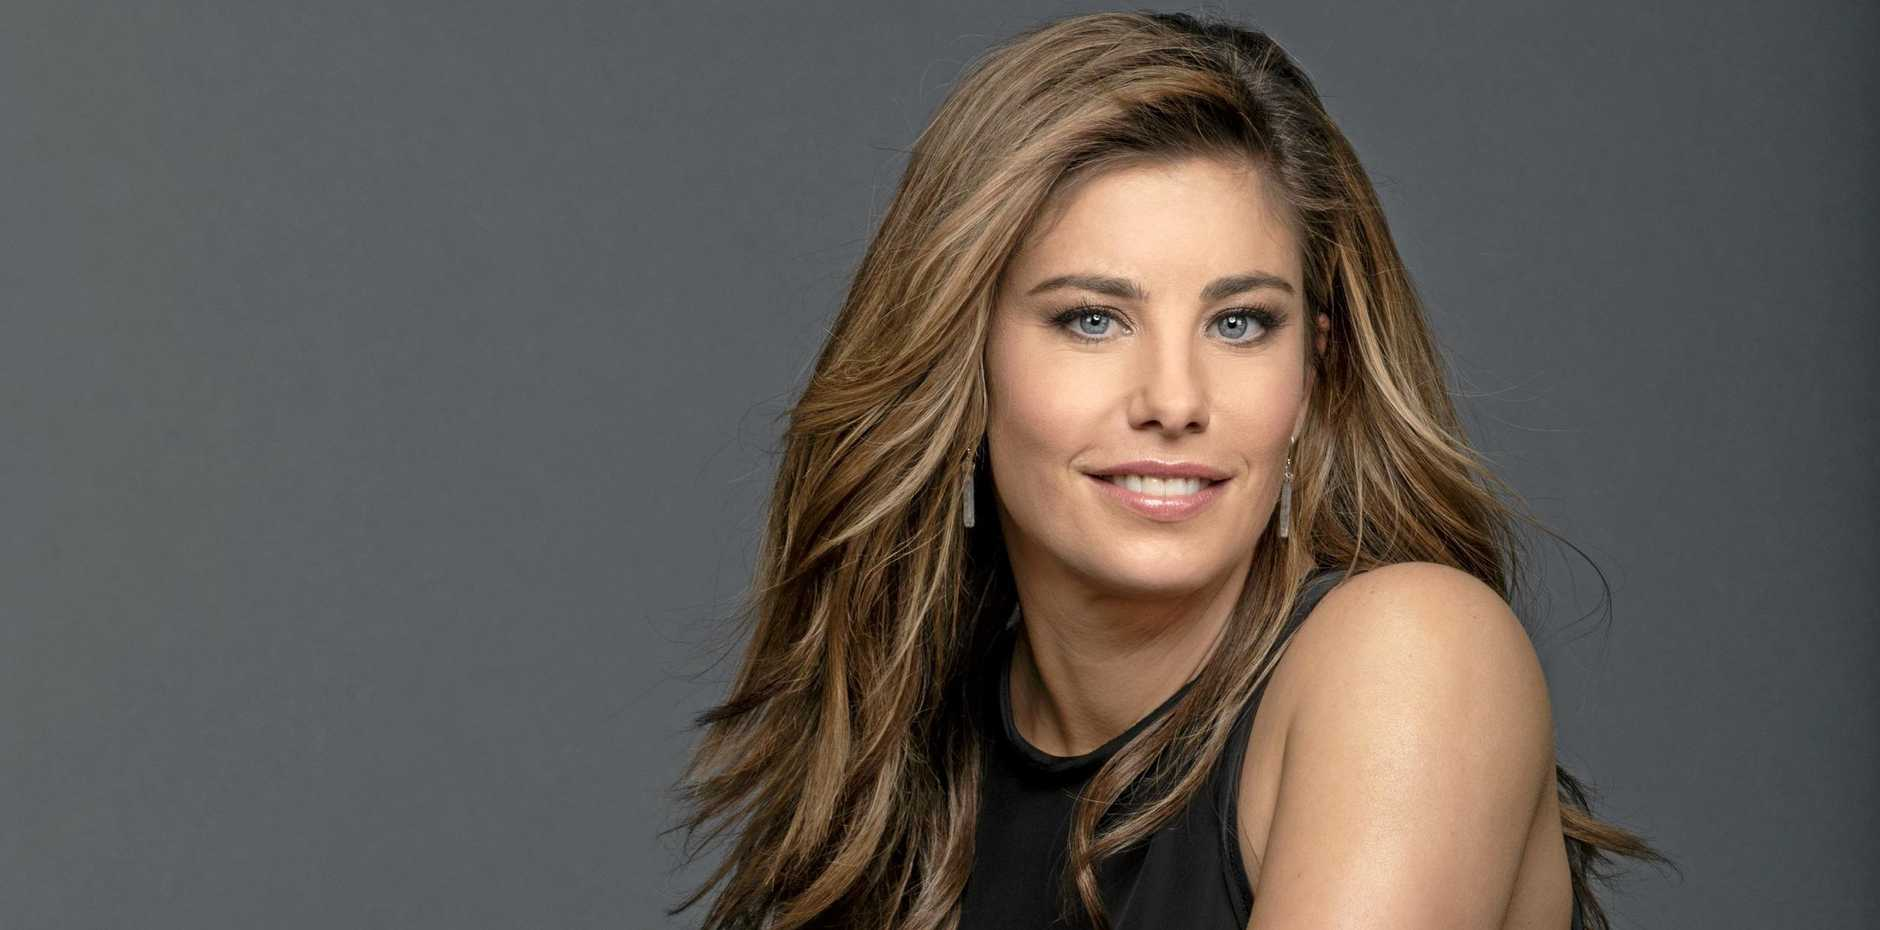 Brooke Satchwell stars opposite Scott Ryan in the TV series Mr Inbetween.